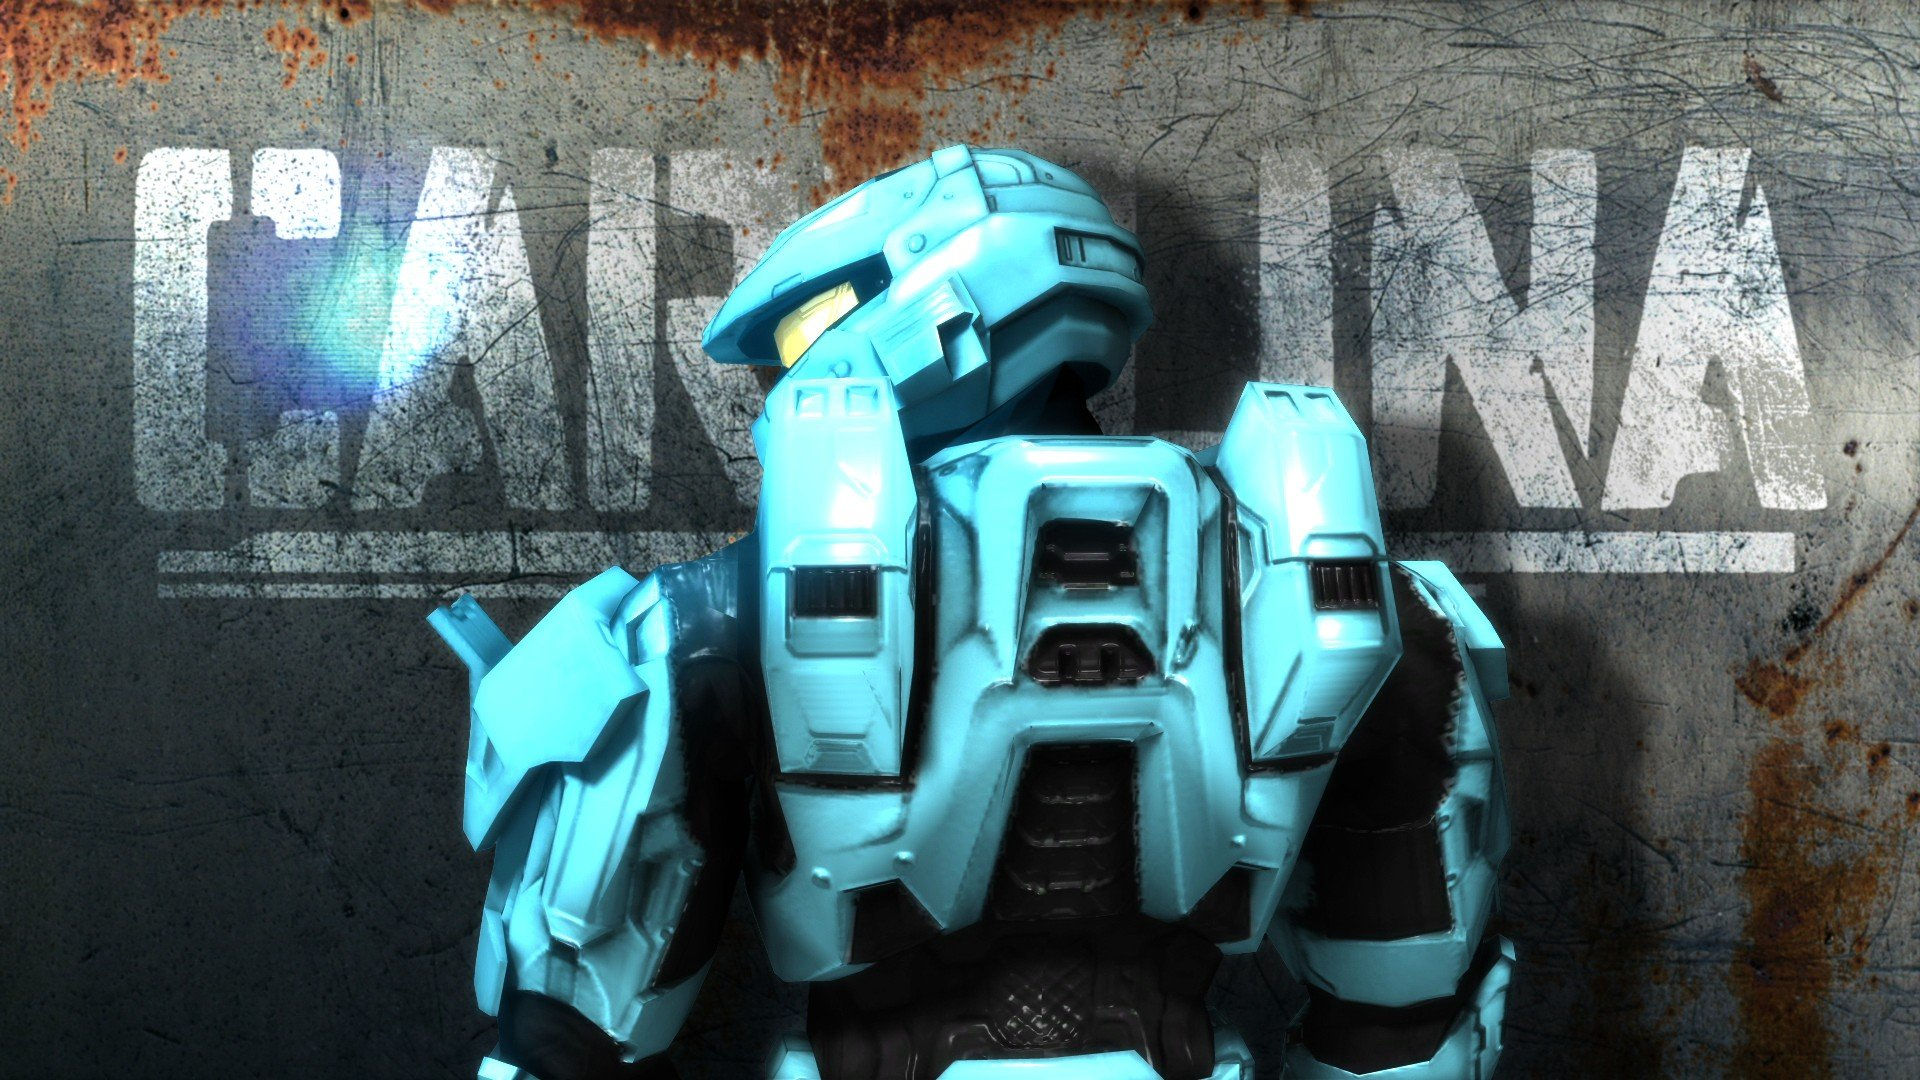 Red Vs Blue Hd Wallpapers Desktop And Mobile Images Photos